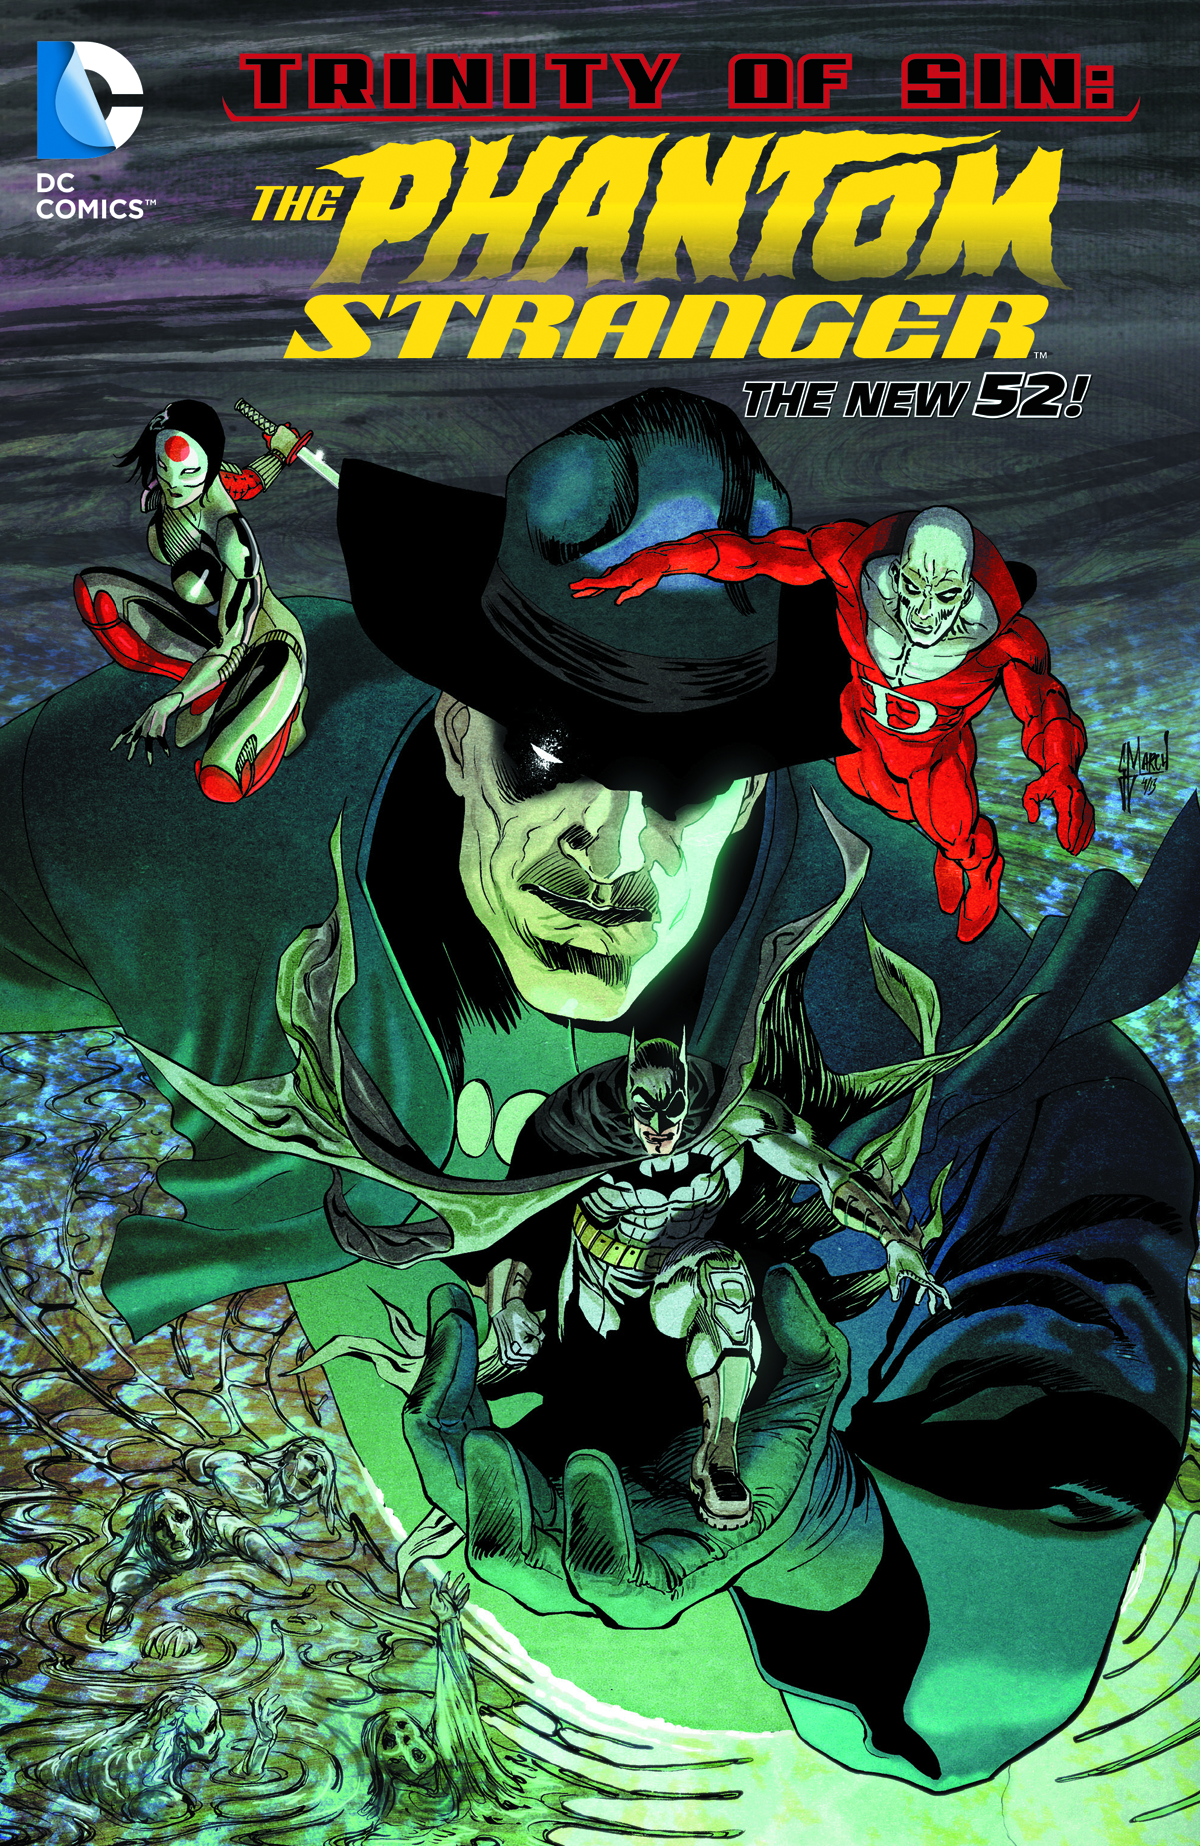 PHANTOM STRANGER TP VOL 02 BREACH OF FAITH